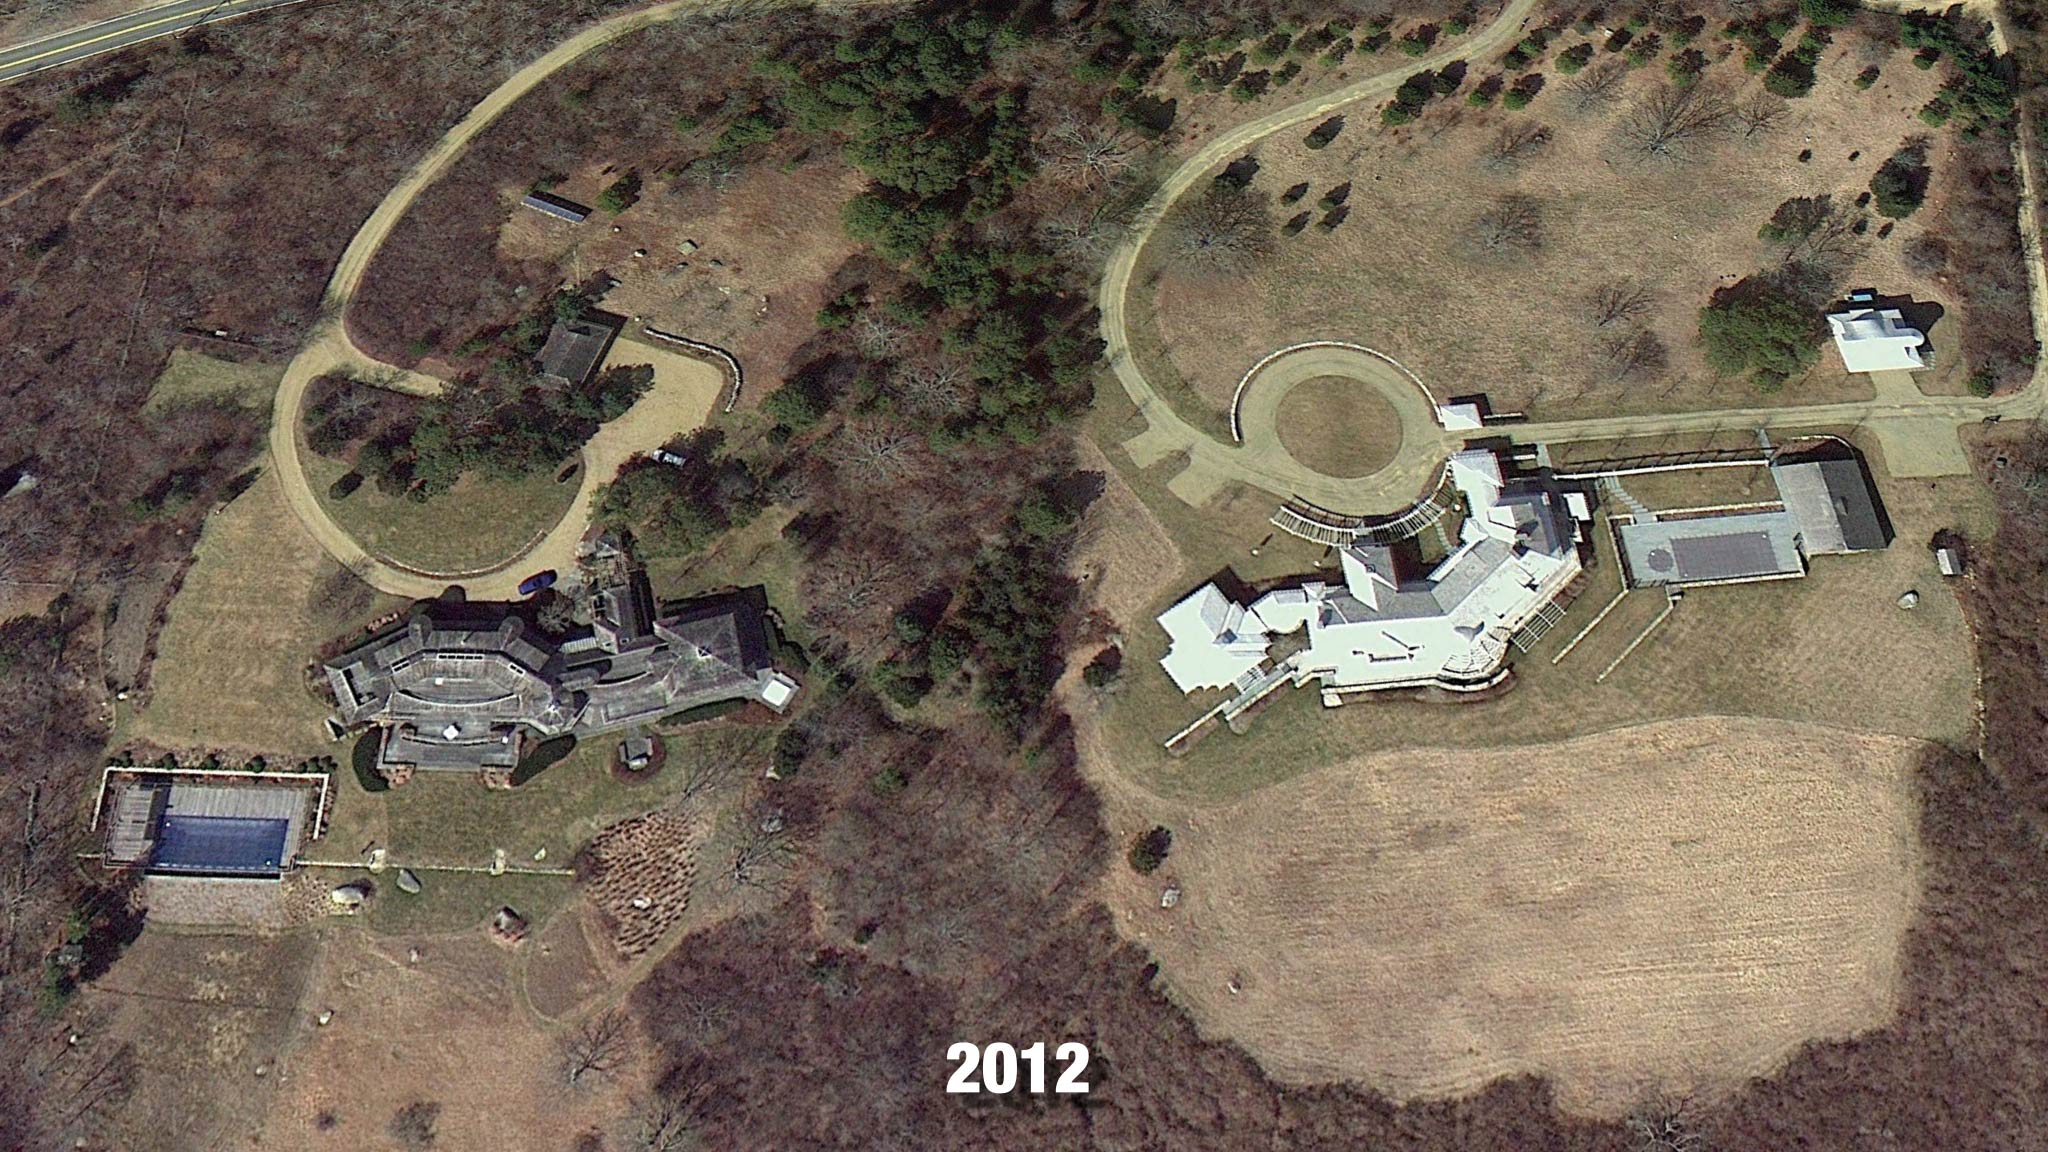 OBH_B&A_MV_Satellite_03_After_Year--Credit_Google_Earth.jpg